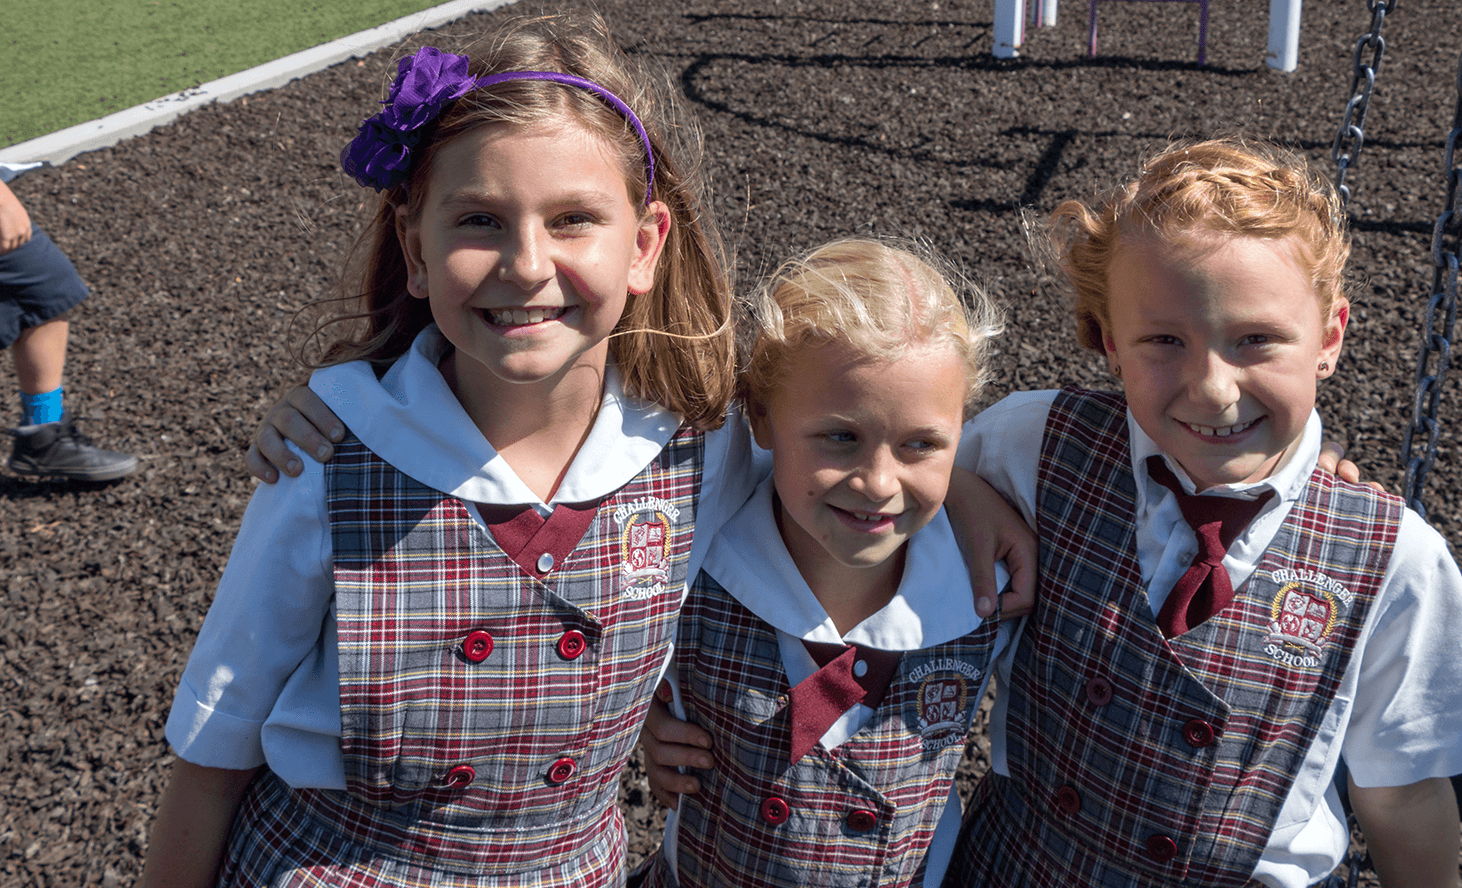 Elementary School Smile | Challenger School - Salt Lake | Private School In Salt Lake City, Utah